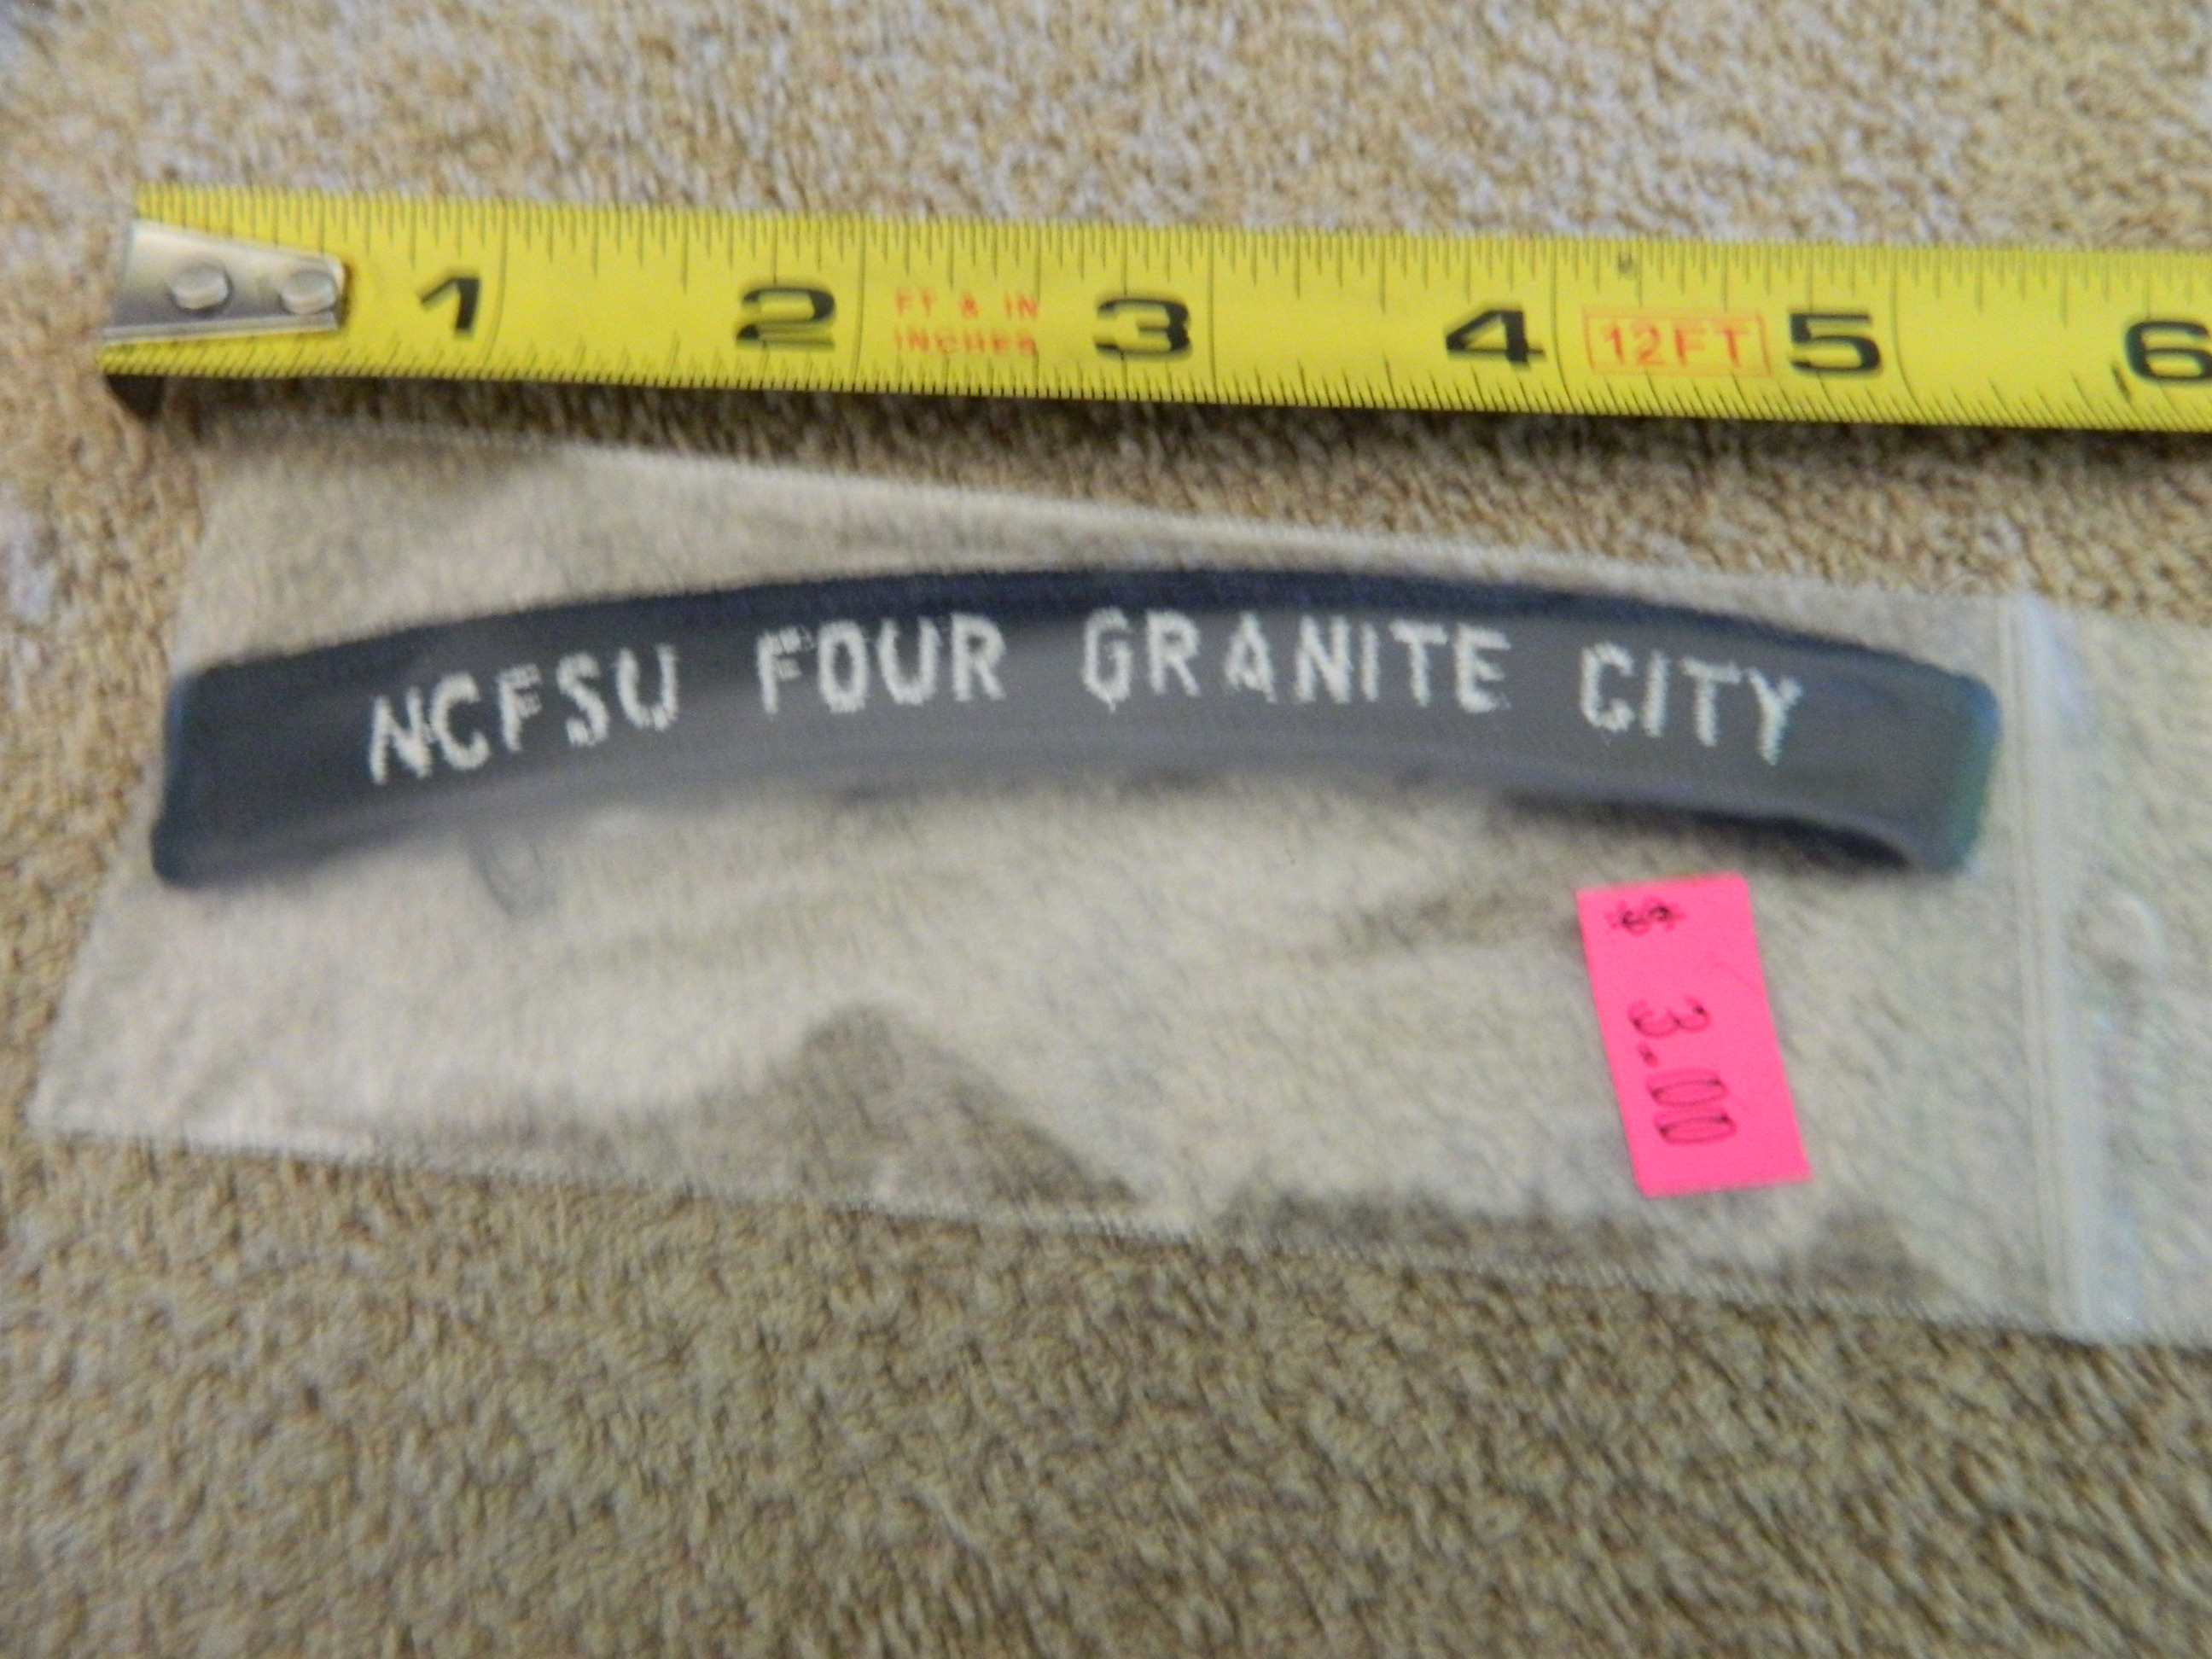 USN Rocker: NCFSU FOUR GRANITE CITY